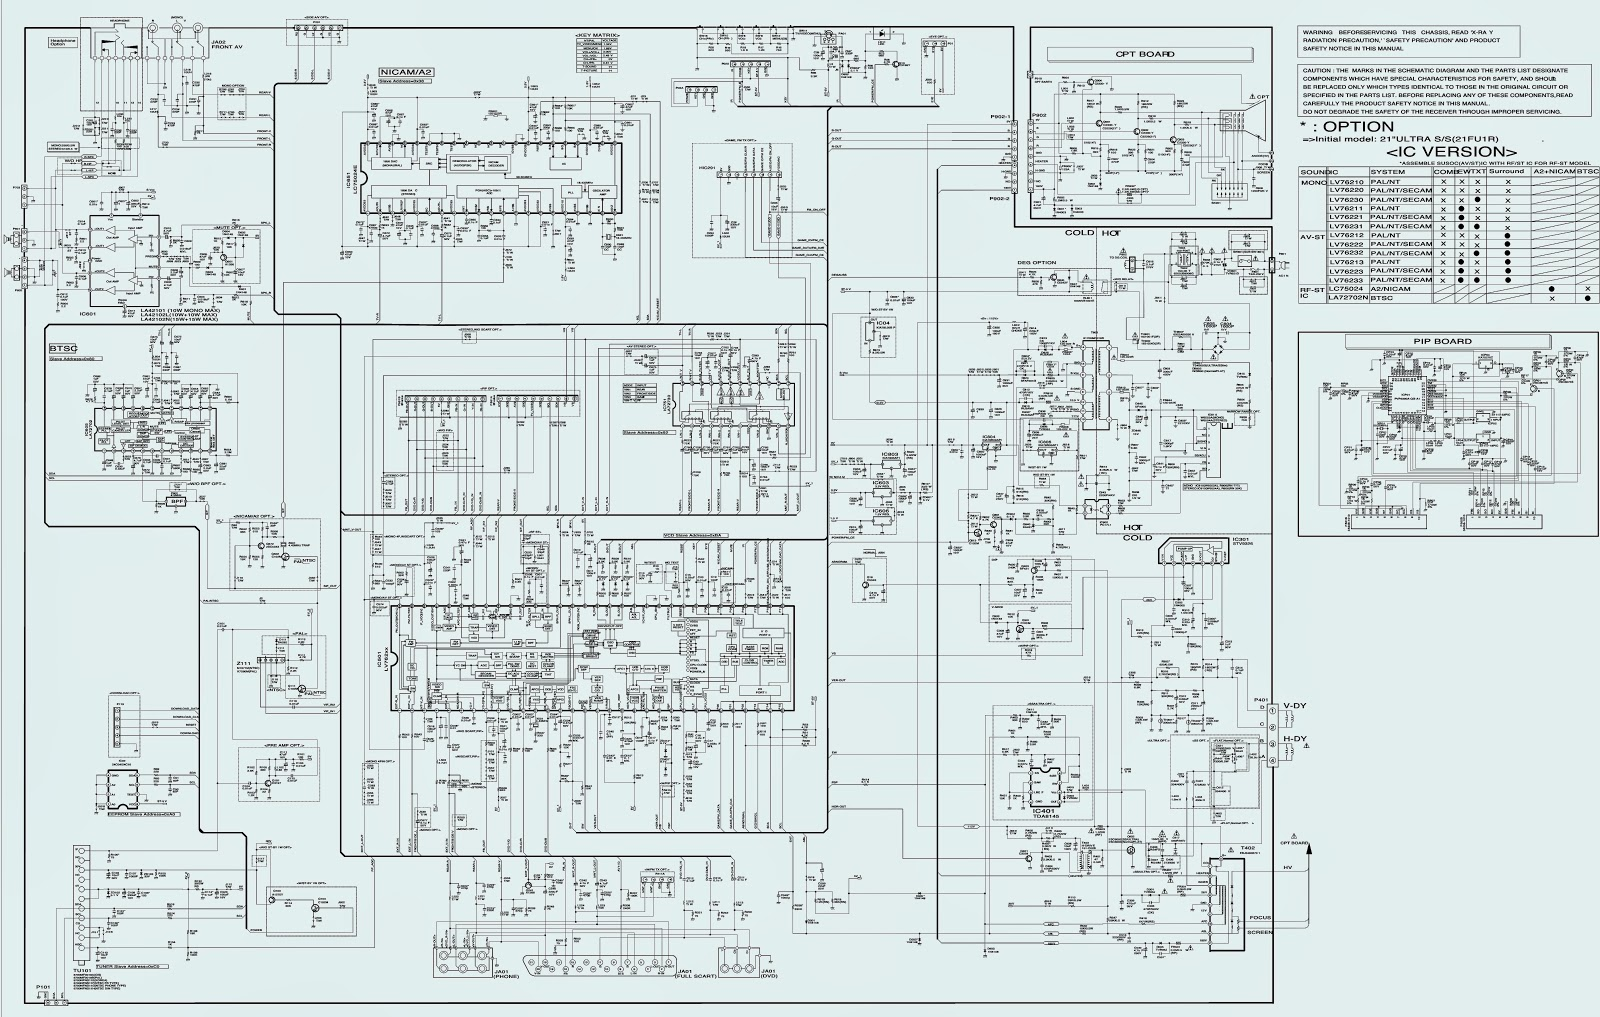 Lg 21fu3rl T3 Schematic Circuit Diagram 21 Ctv Cpt Wiring Click On The To Zoom In